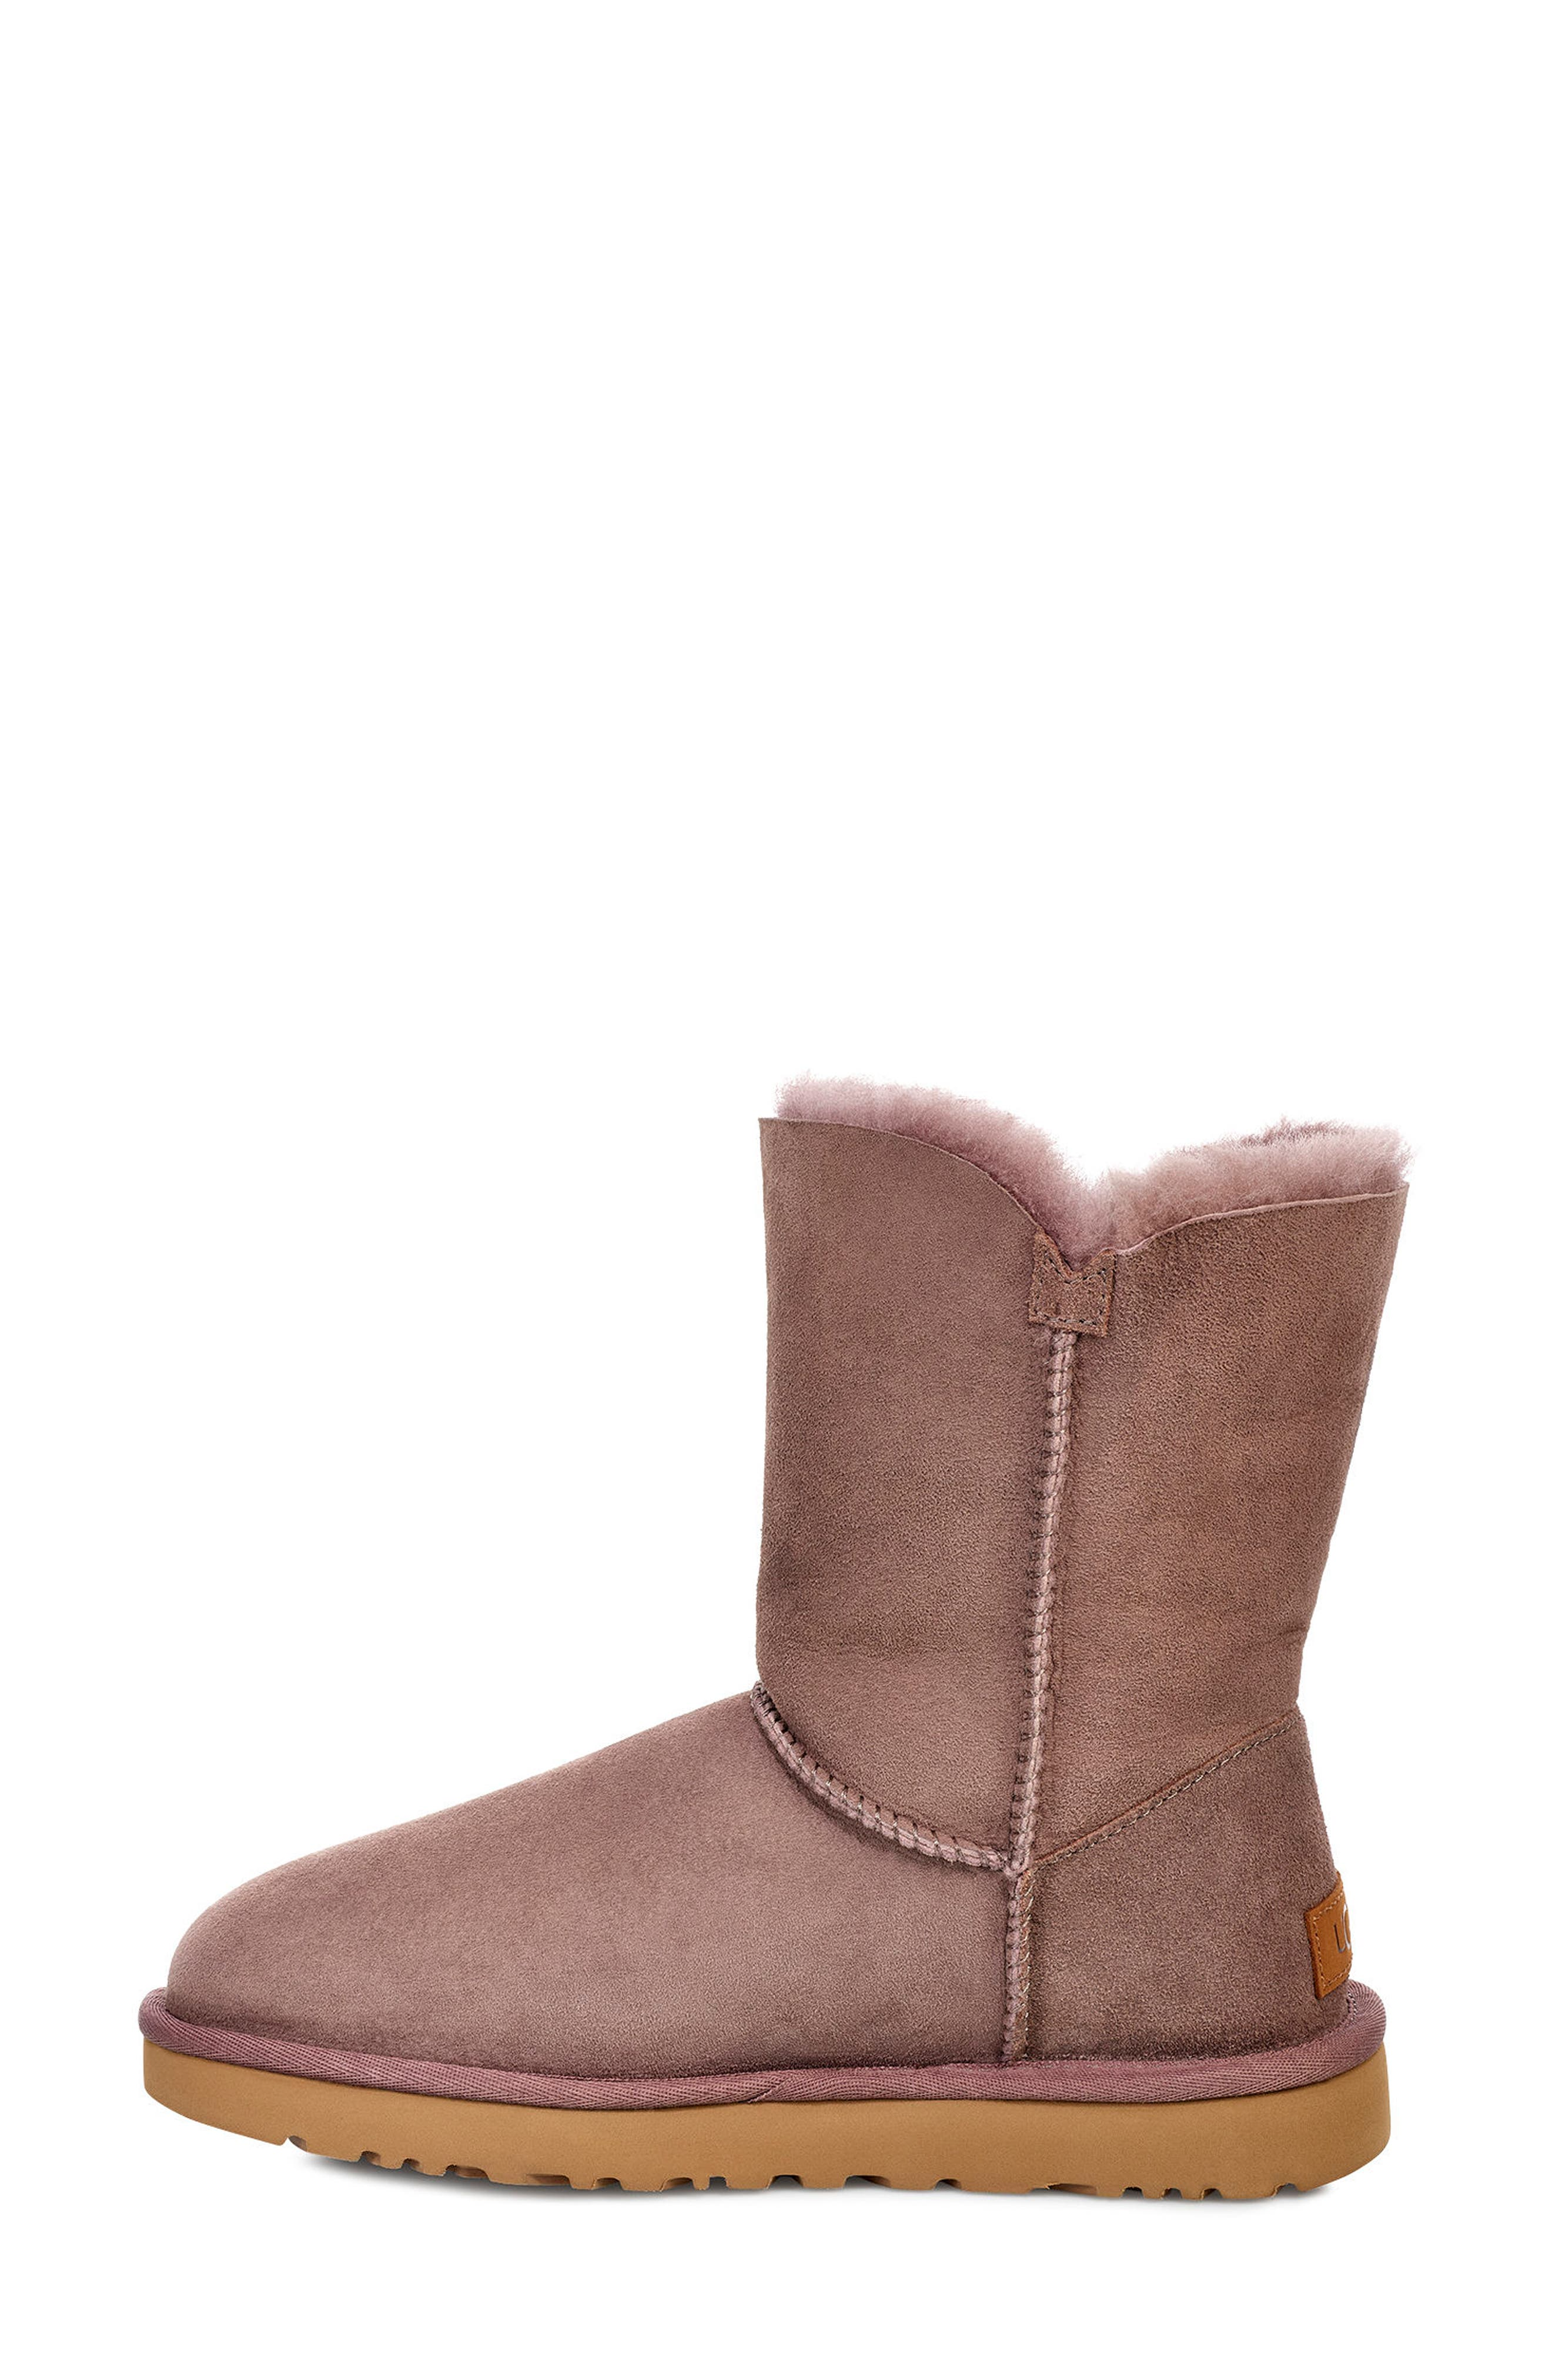 'Bailey Button II' Boot,                             Alternate thumbnail 6, color,                             STORMY GREY SUEDE